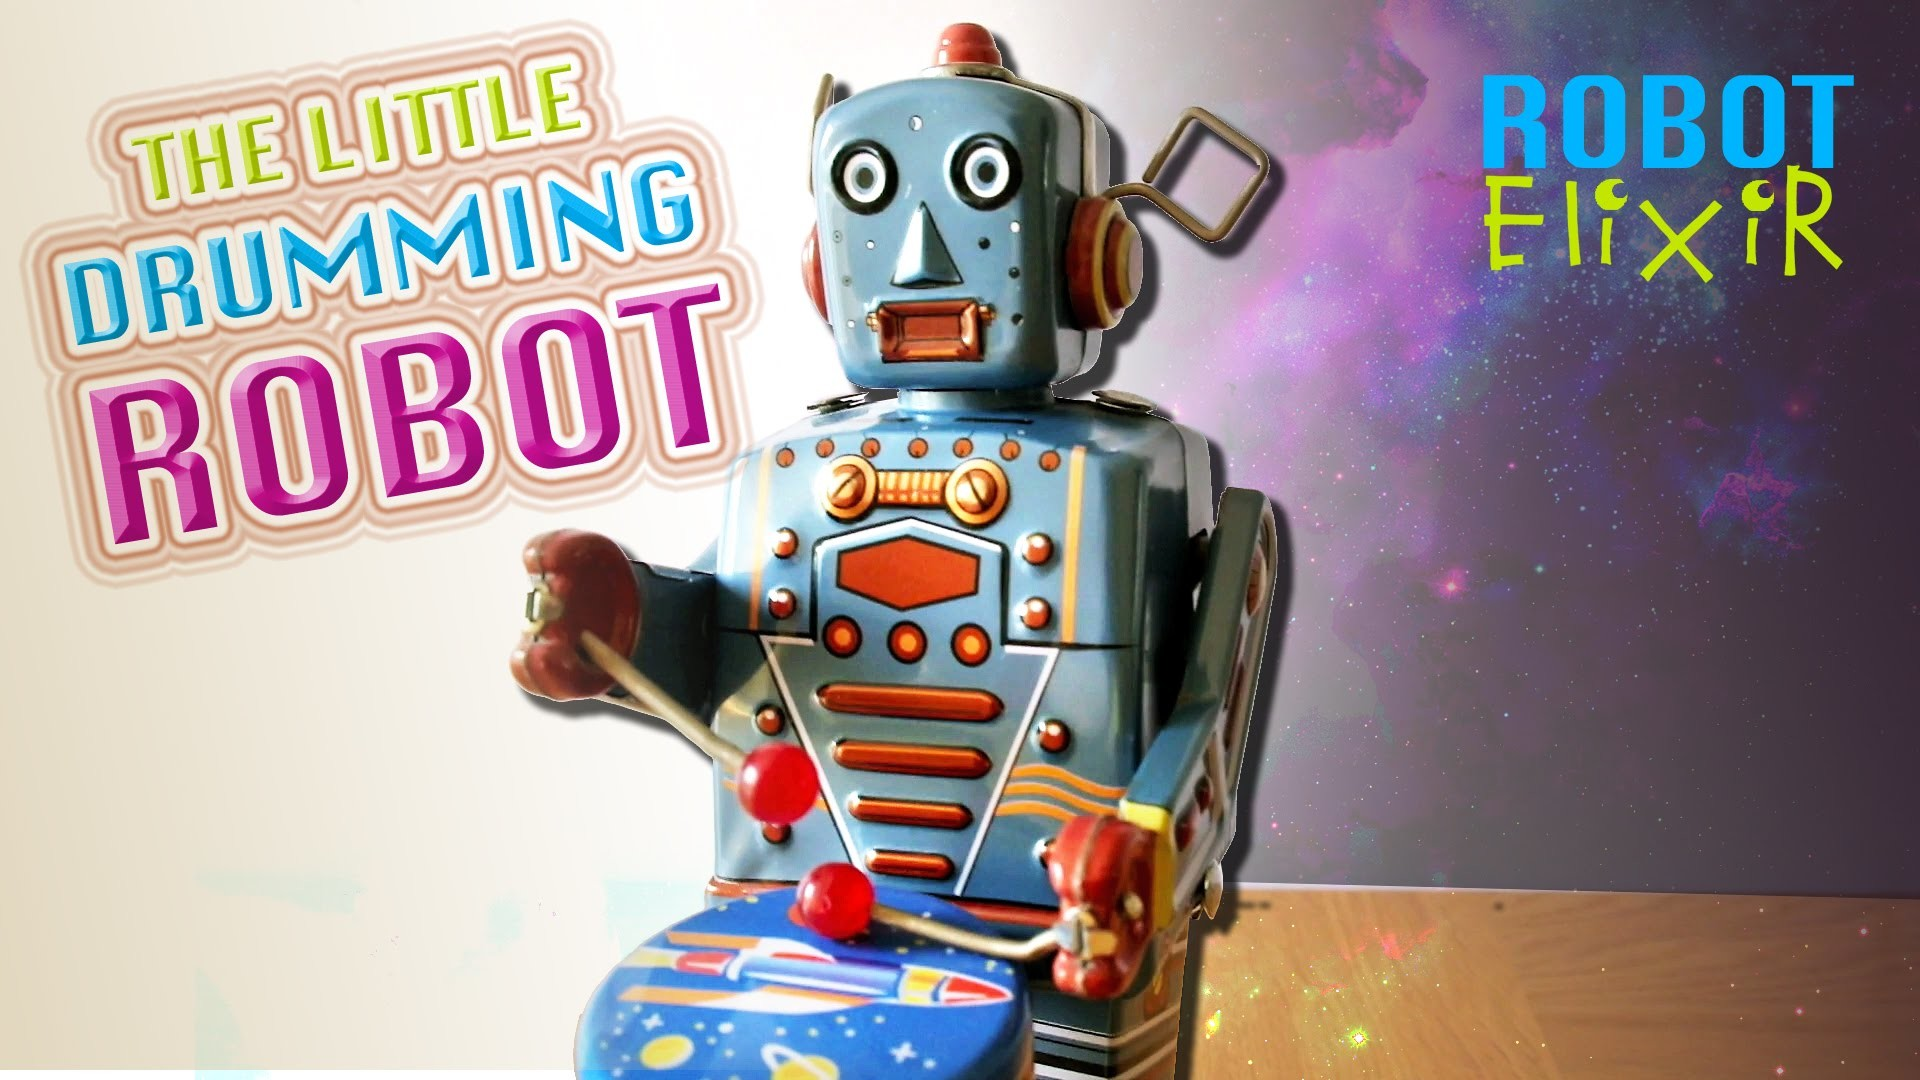 1920x1080 The Little Drumming Robot - Retro Musical Windup Toy